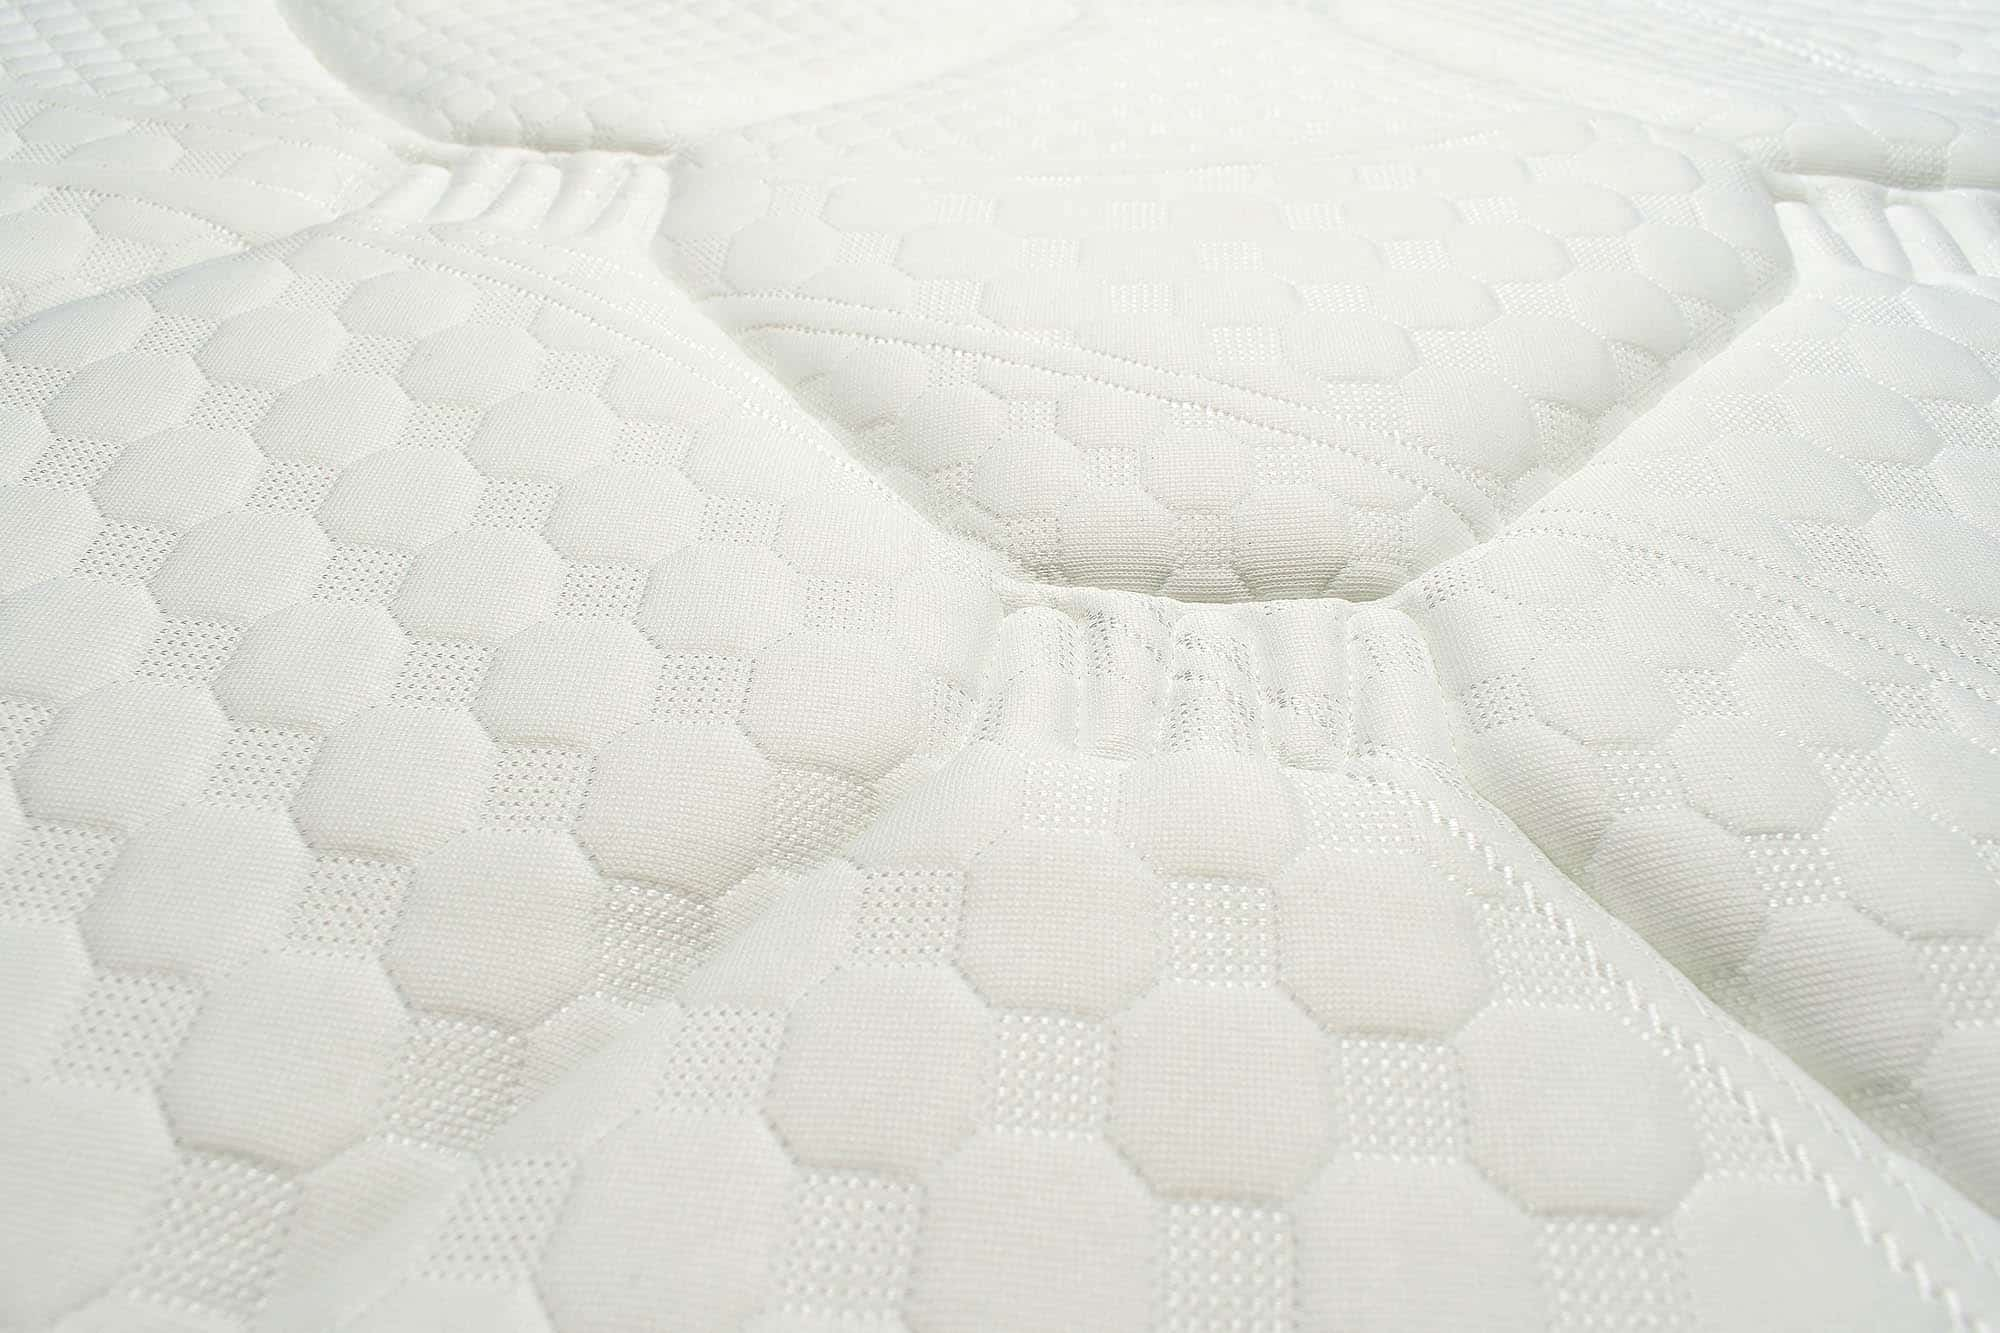 Mattress Cleaning Services Singapore Mattress Cleaning Singapore